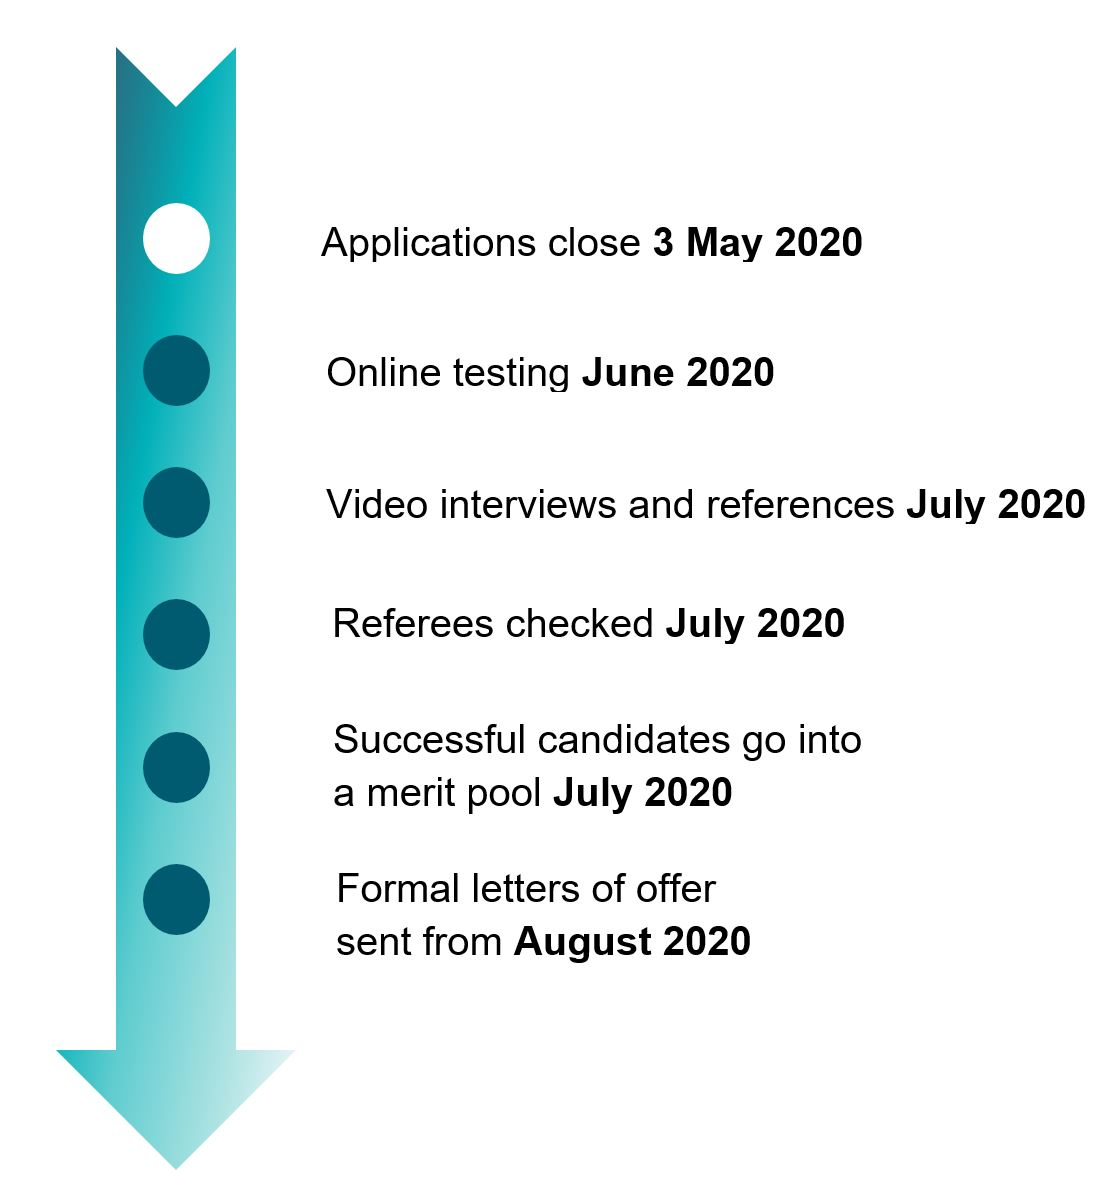 Online testing June 2020 > Applications close 3 May 2020 > Video interviews and references July 2020 > Referees checked July 2020Successful candidates go into a merit pool July 2020 > Formal letters of offer sent from August 2020